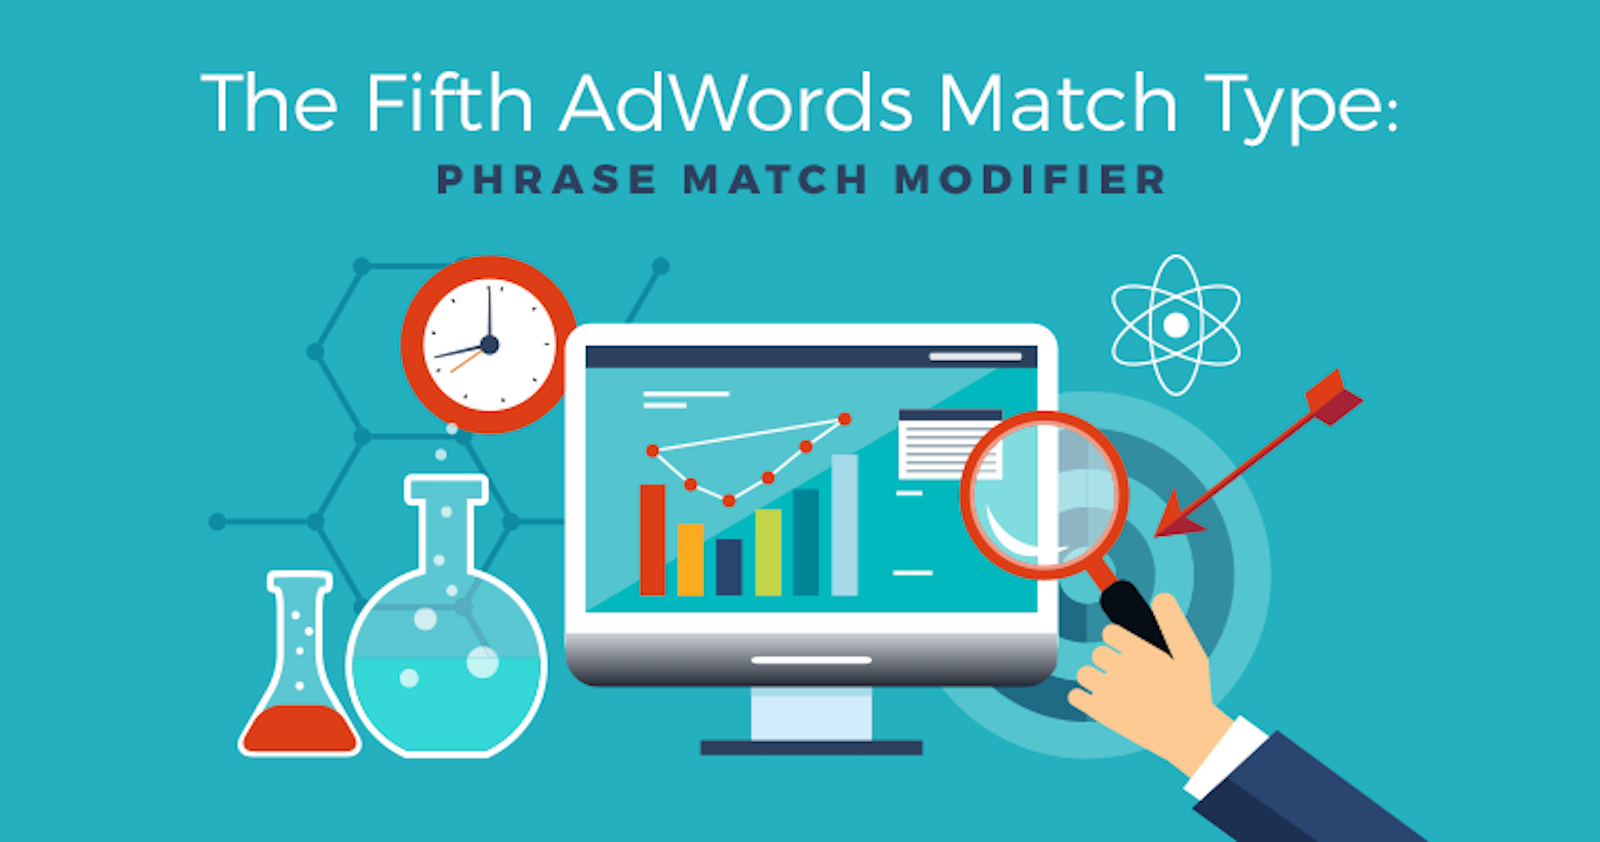 The Fifth Adwords Match Type Phrase Match Modifier